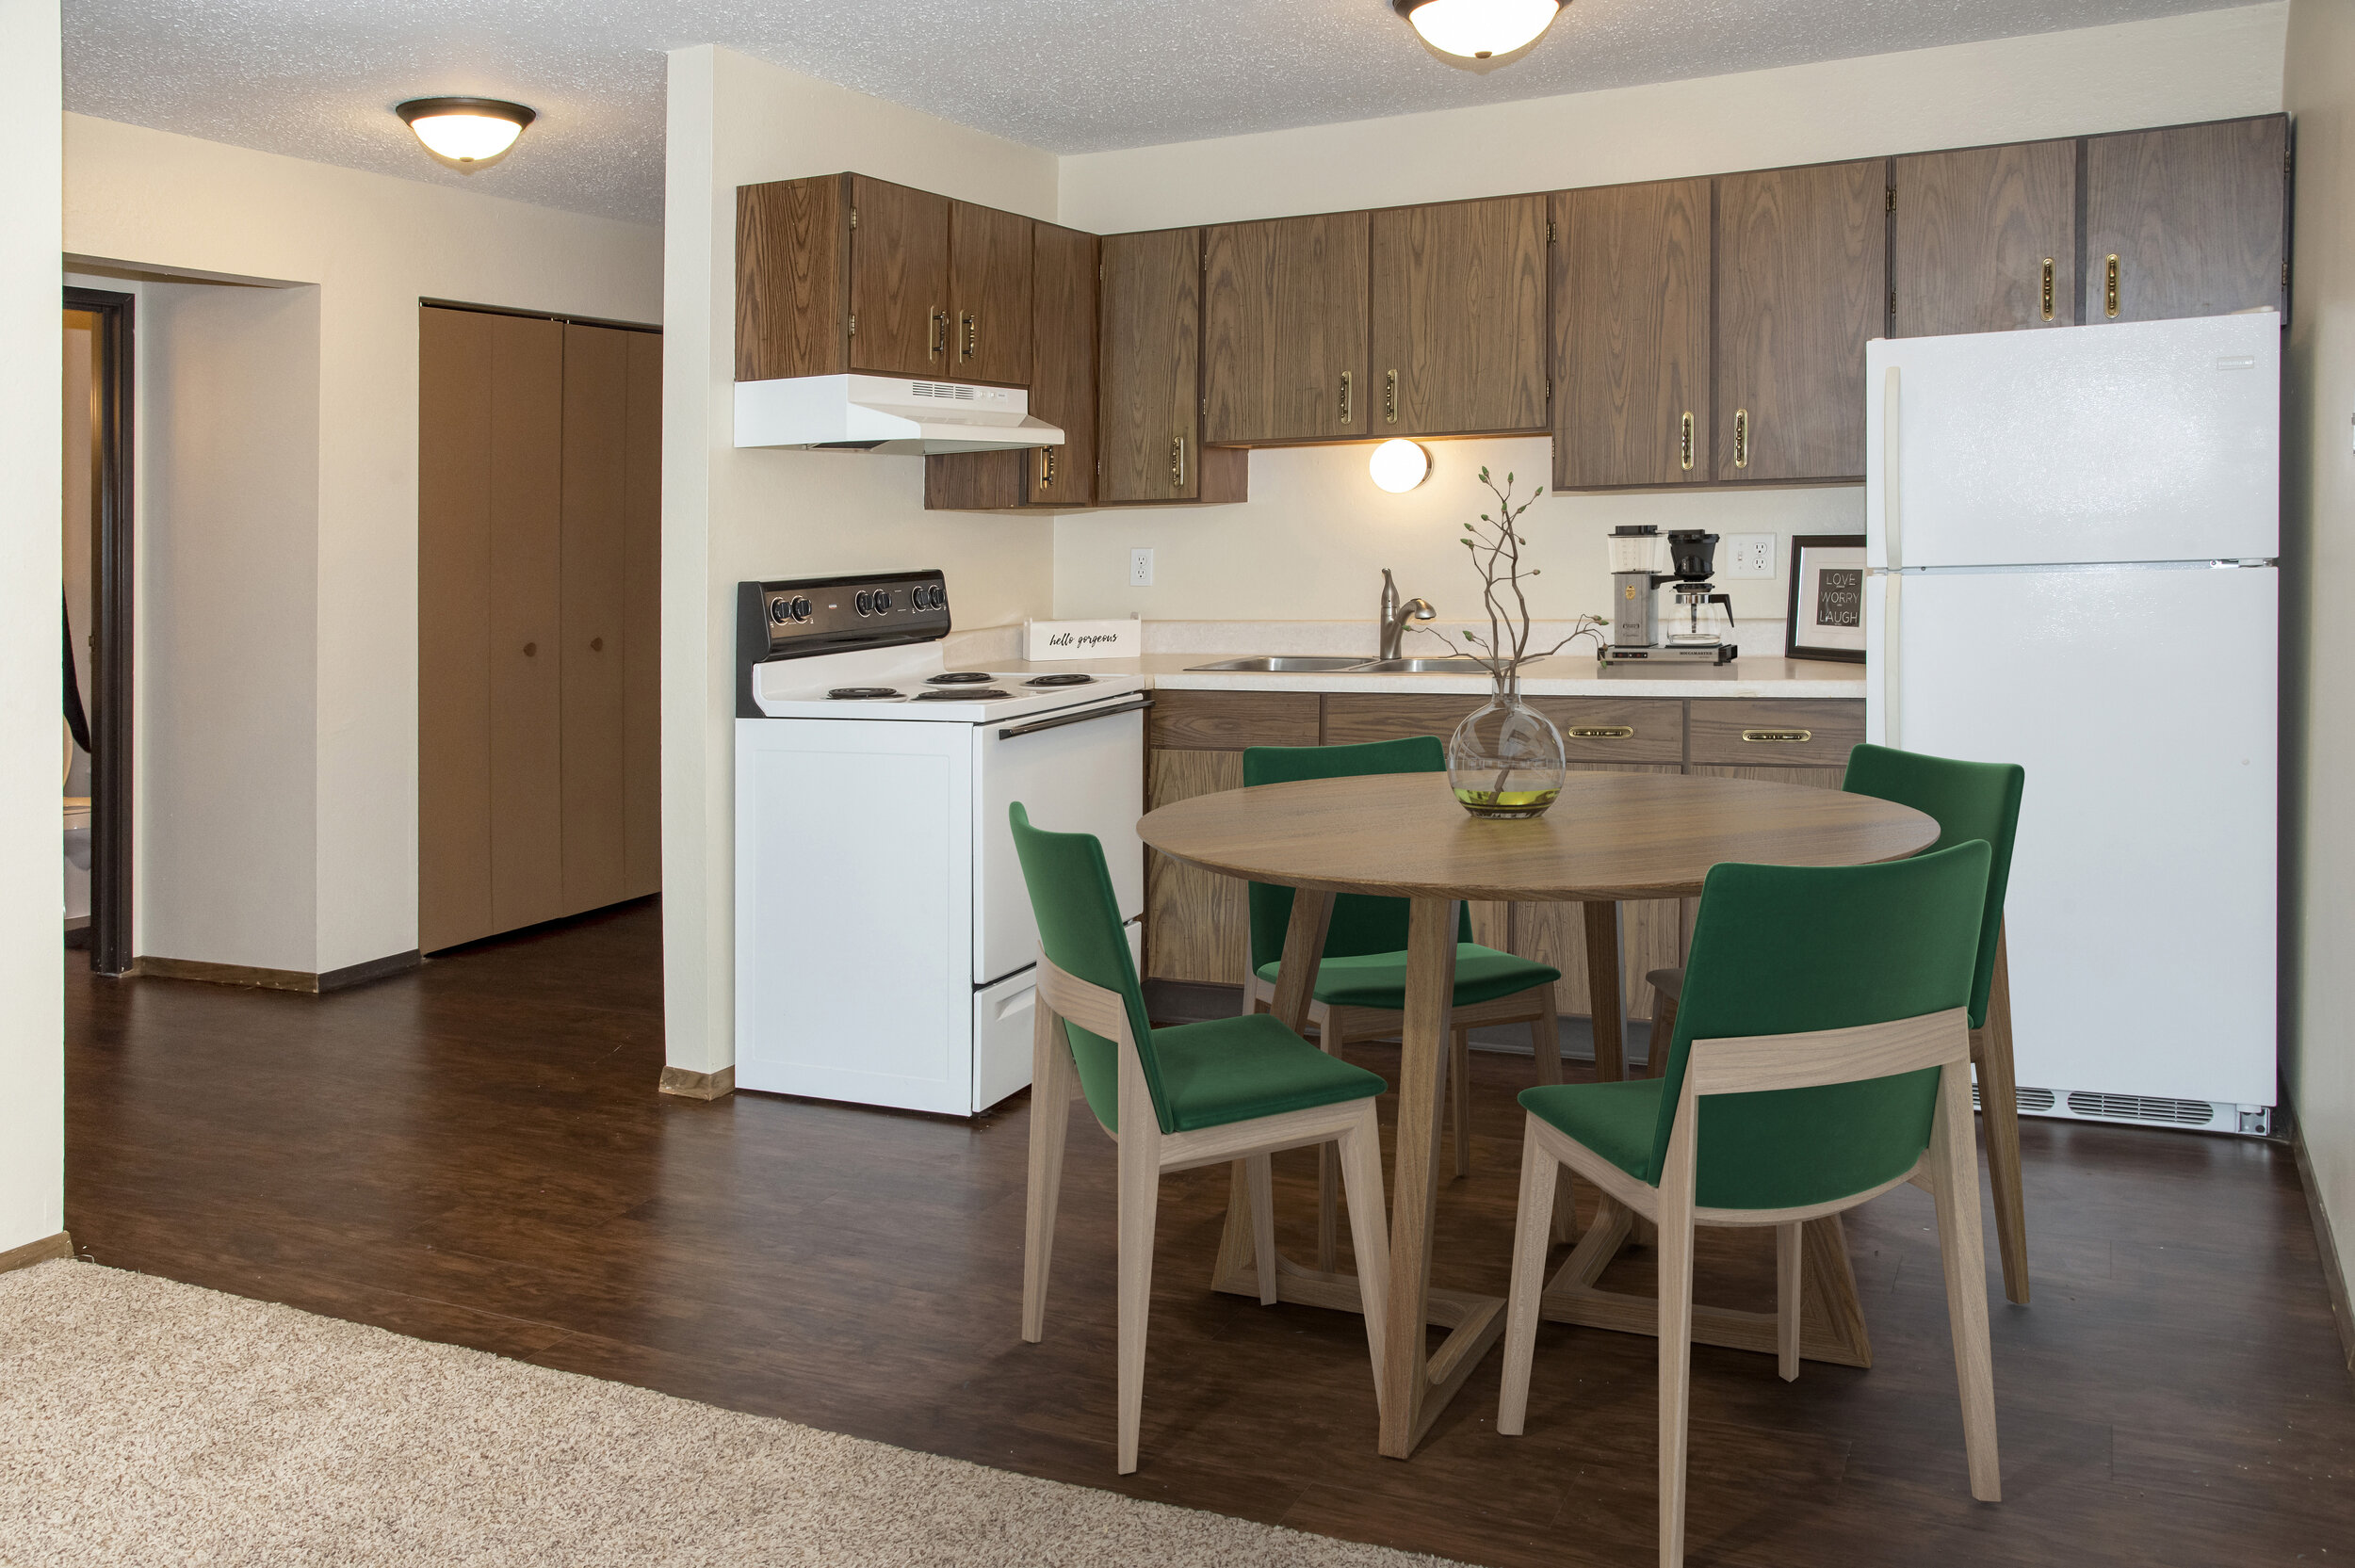 02 Remodeled Studios, One, and Two Bedroom Apartments.jpg